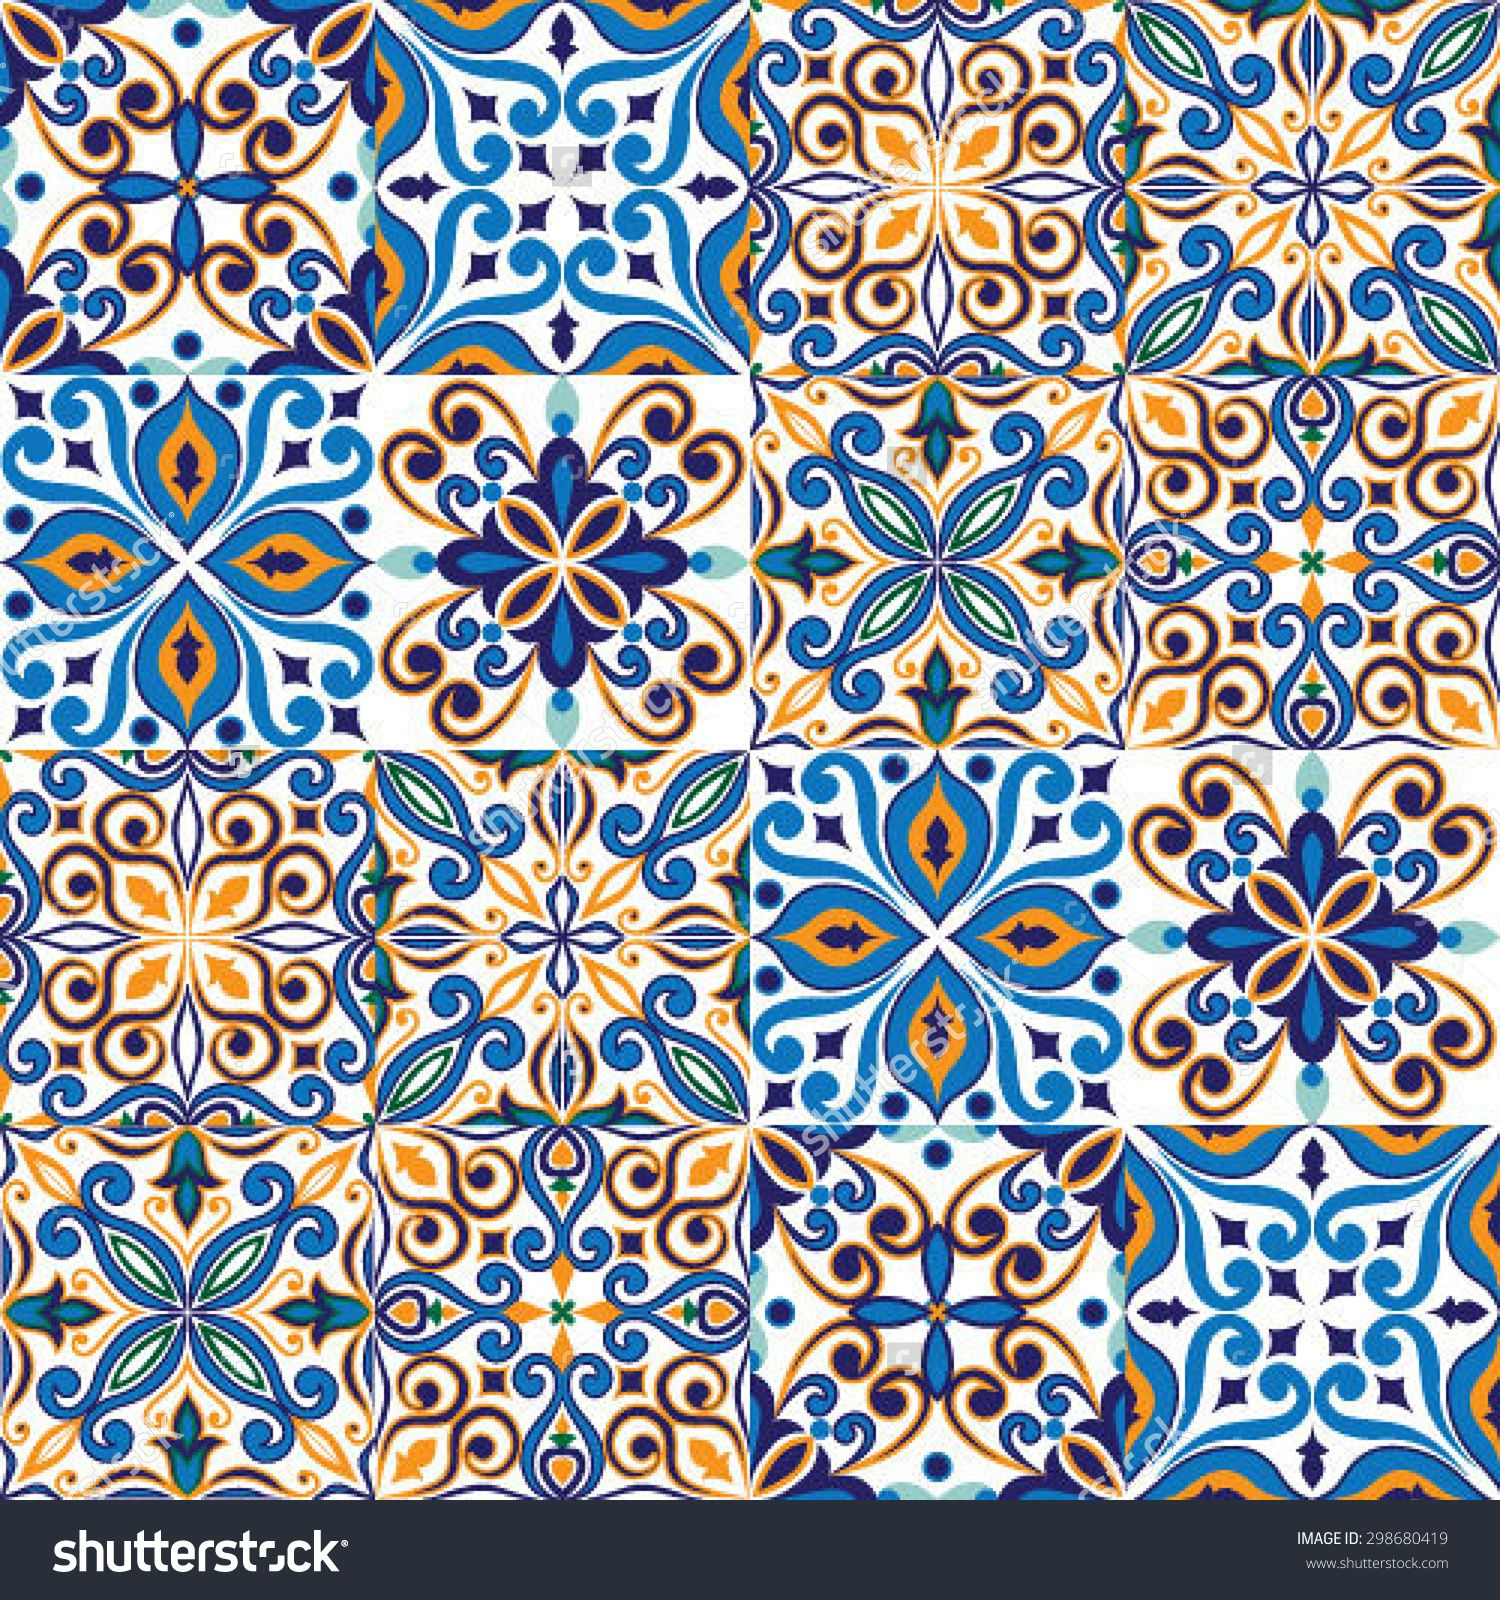 Seamless tile background blue white orange arabic indian seamless tile background blue white orange arabic indian patterns mexican talavera dailygadgetfo Images